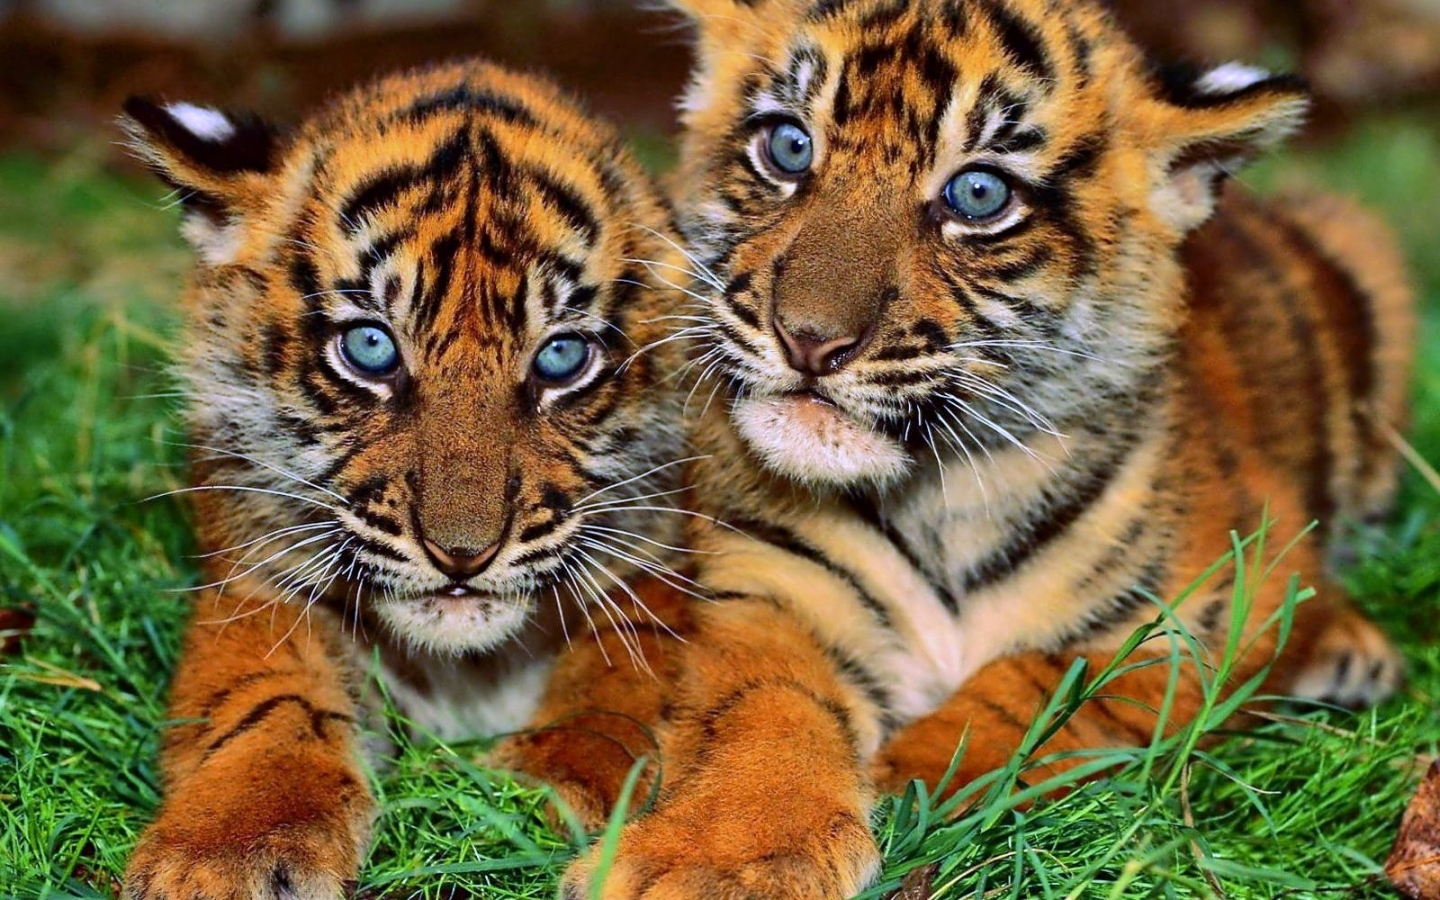 48283 download wallpaper Animals, Tigers screensavers and pictures for free